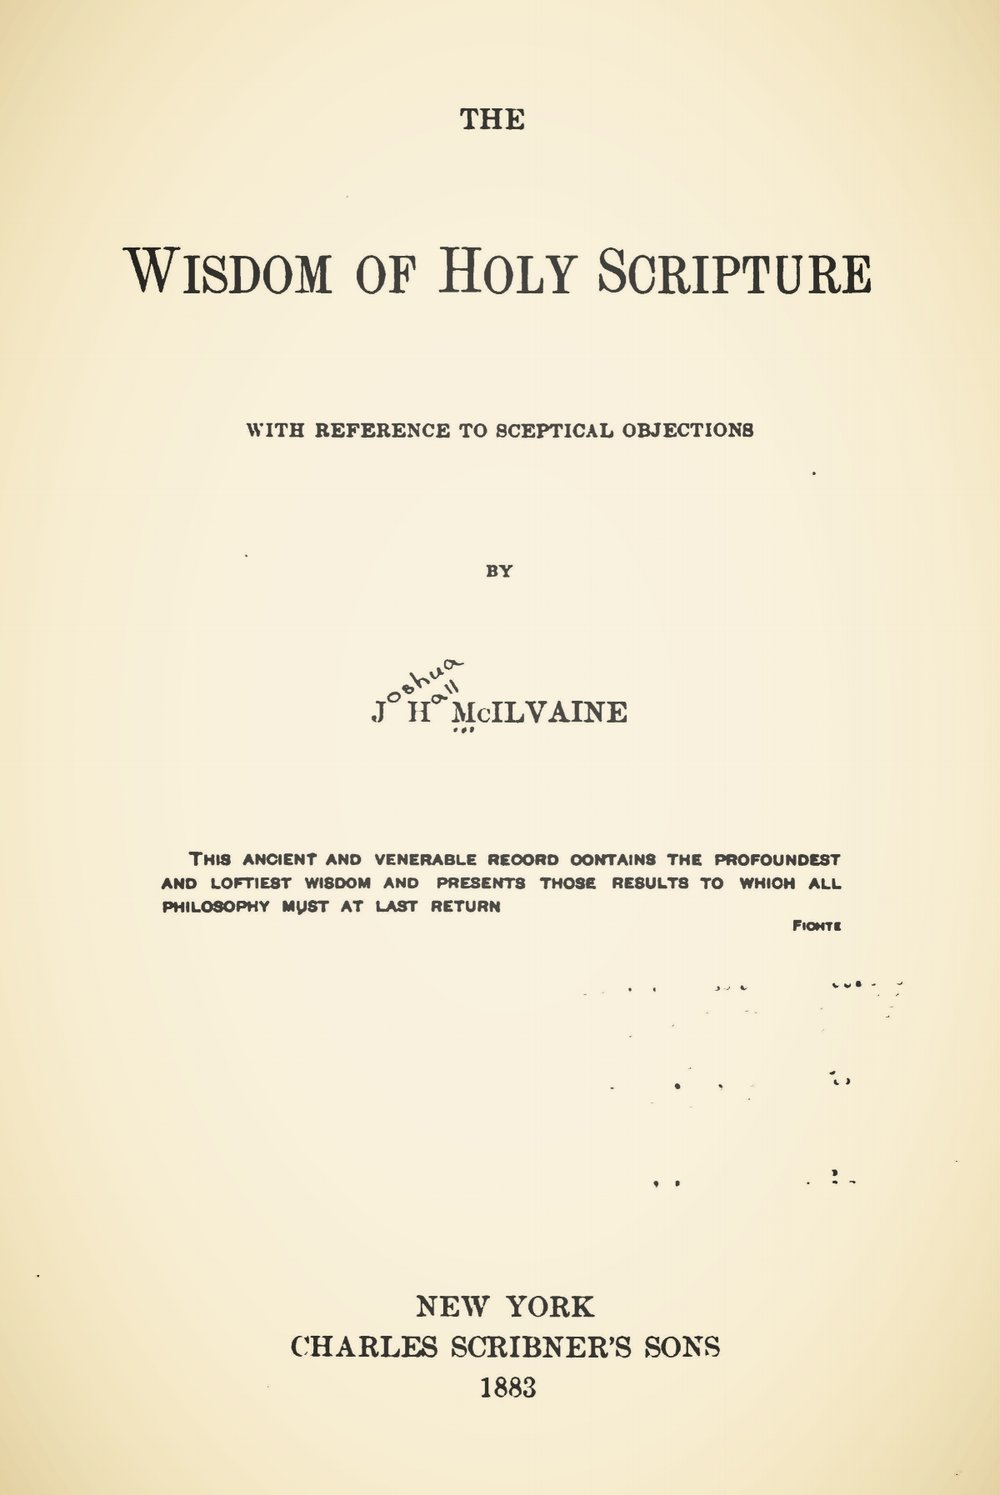 McIlvaine, Joshua Hall, The Wisdom of Holy Scripture Title Page.jpg